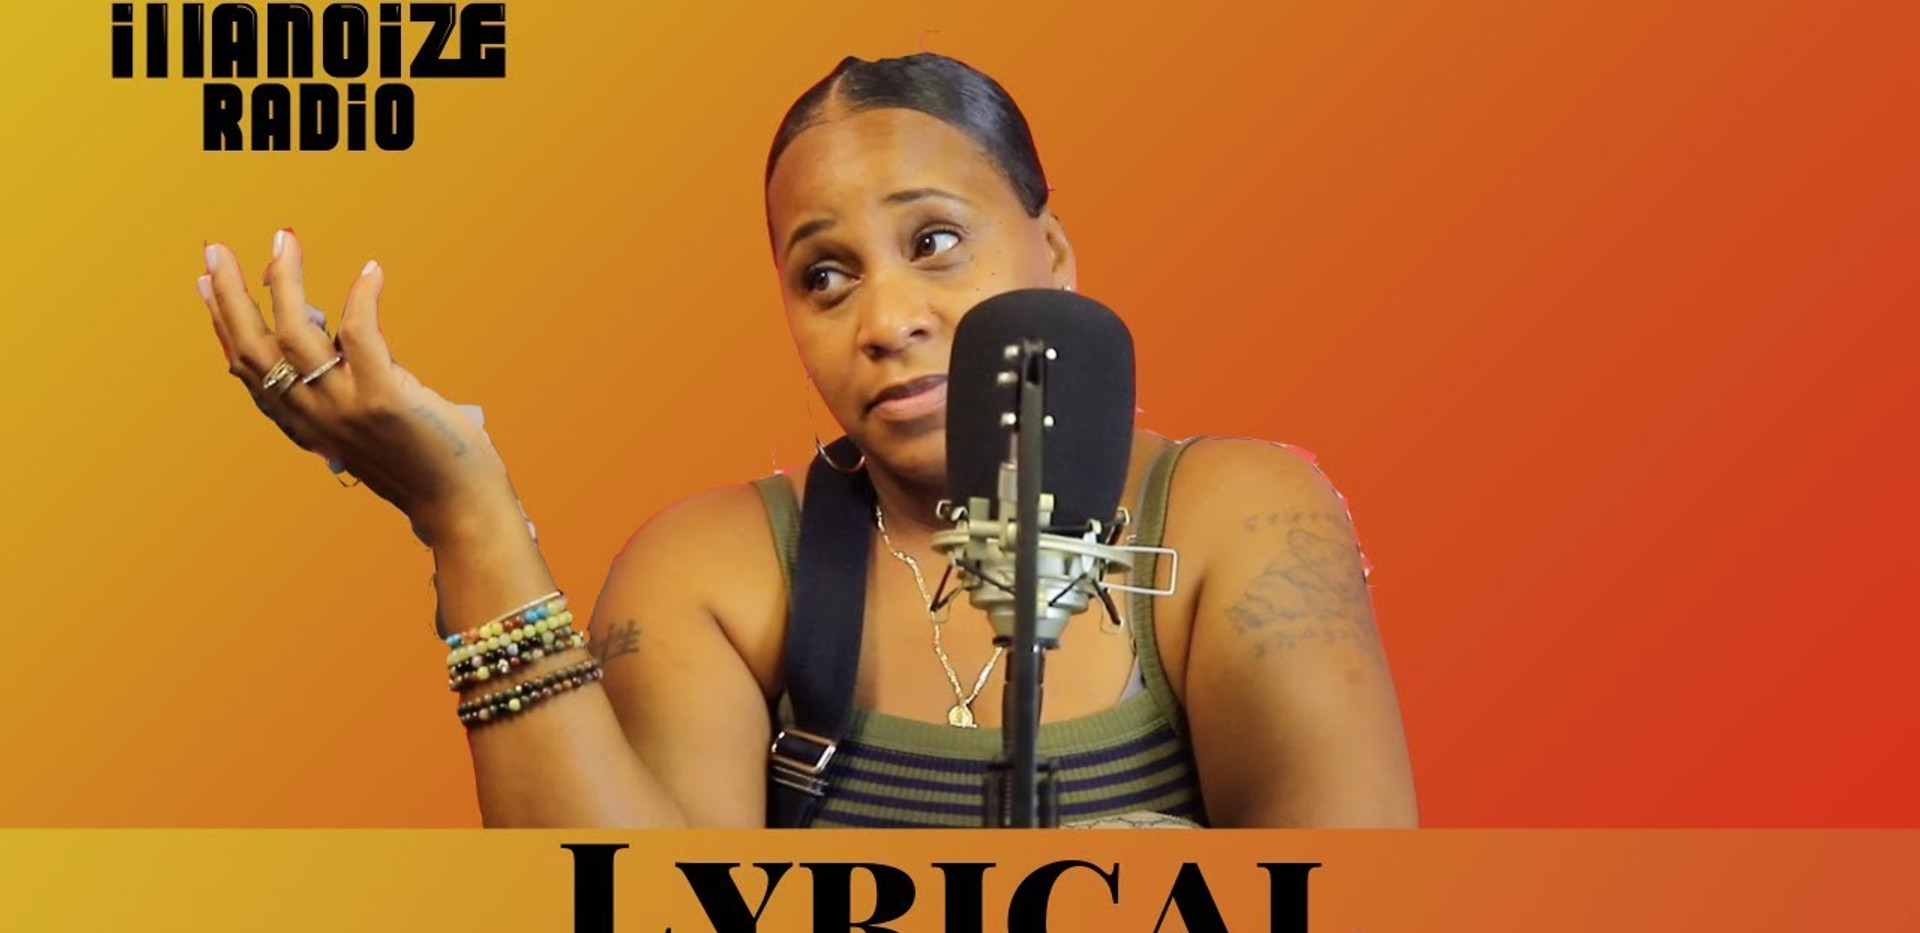 Lyrical Eyes x Illanoize Radio